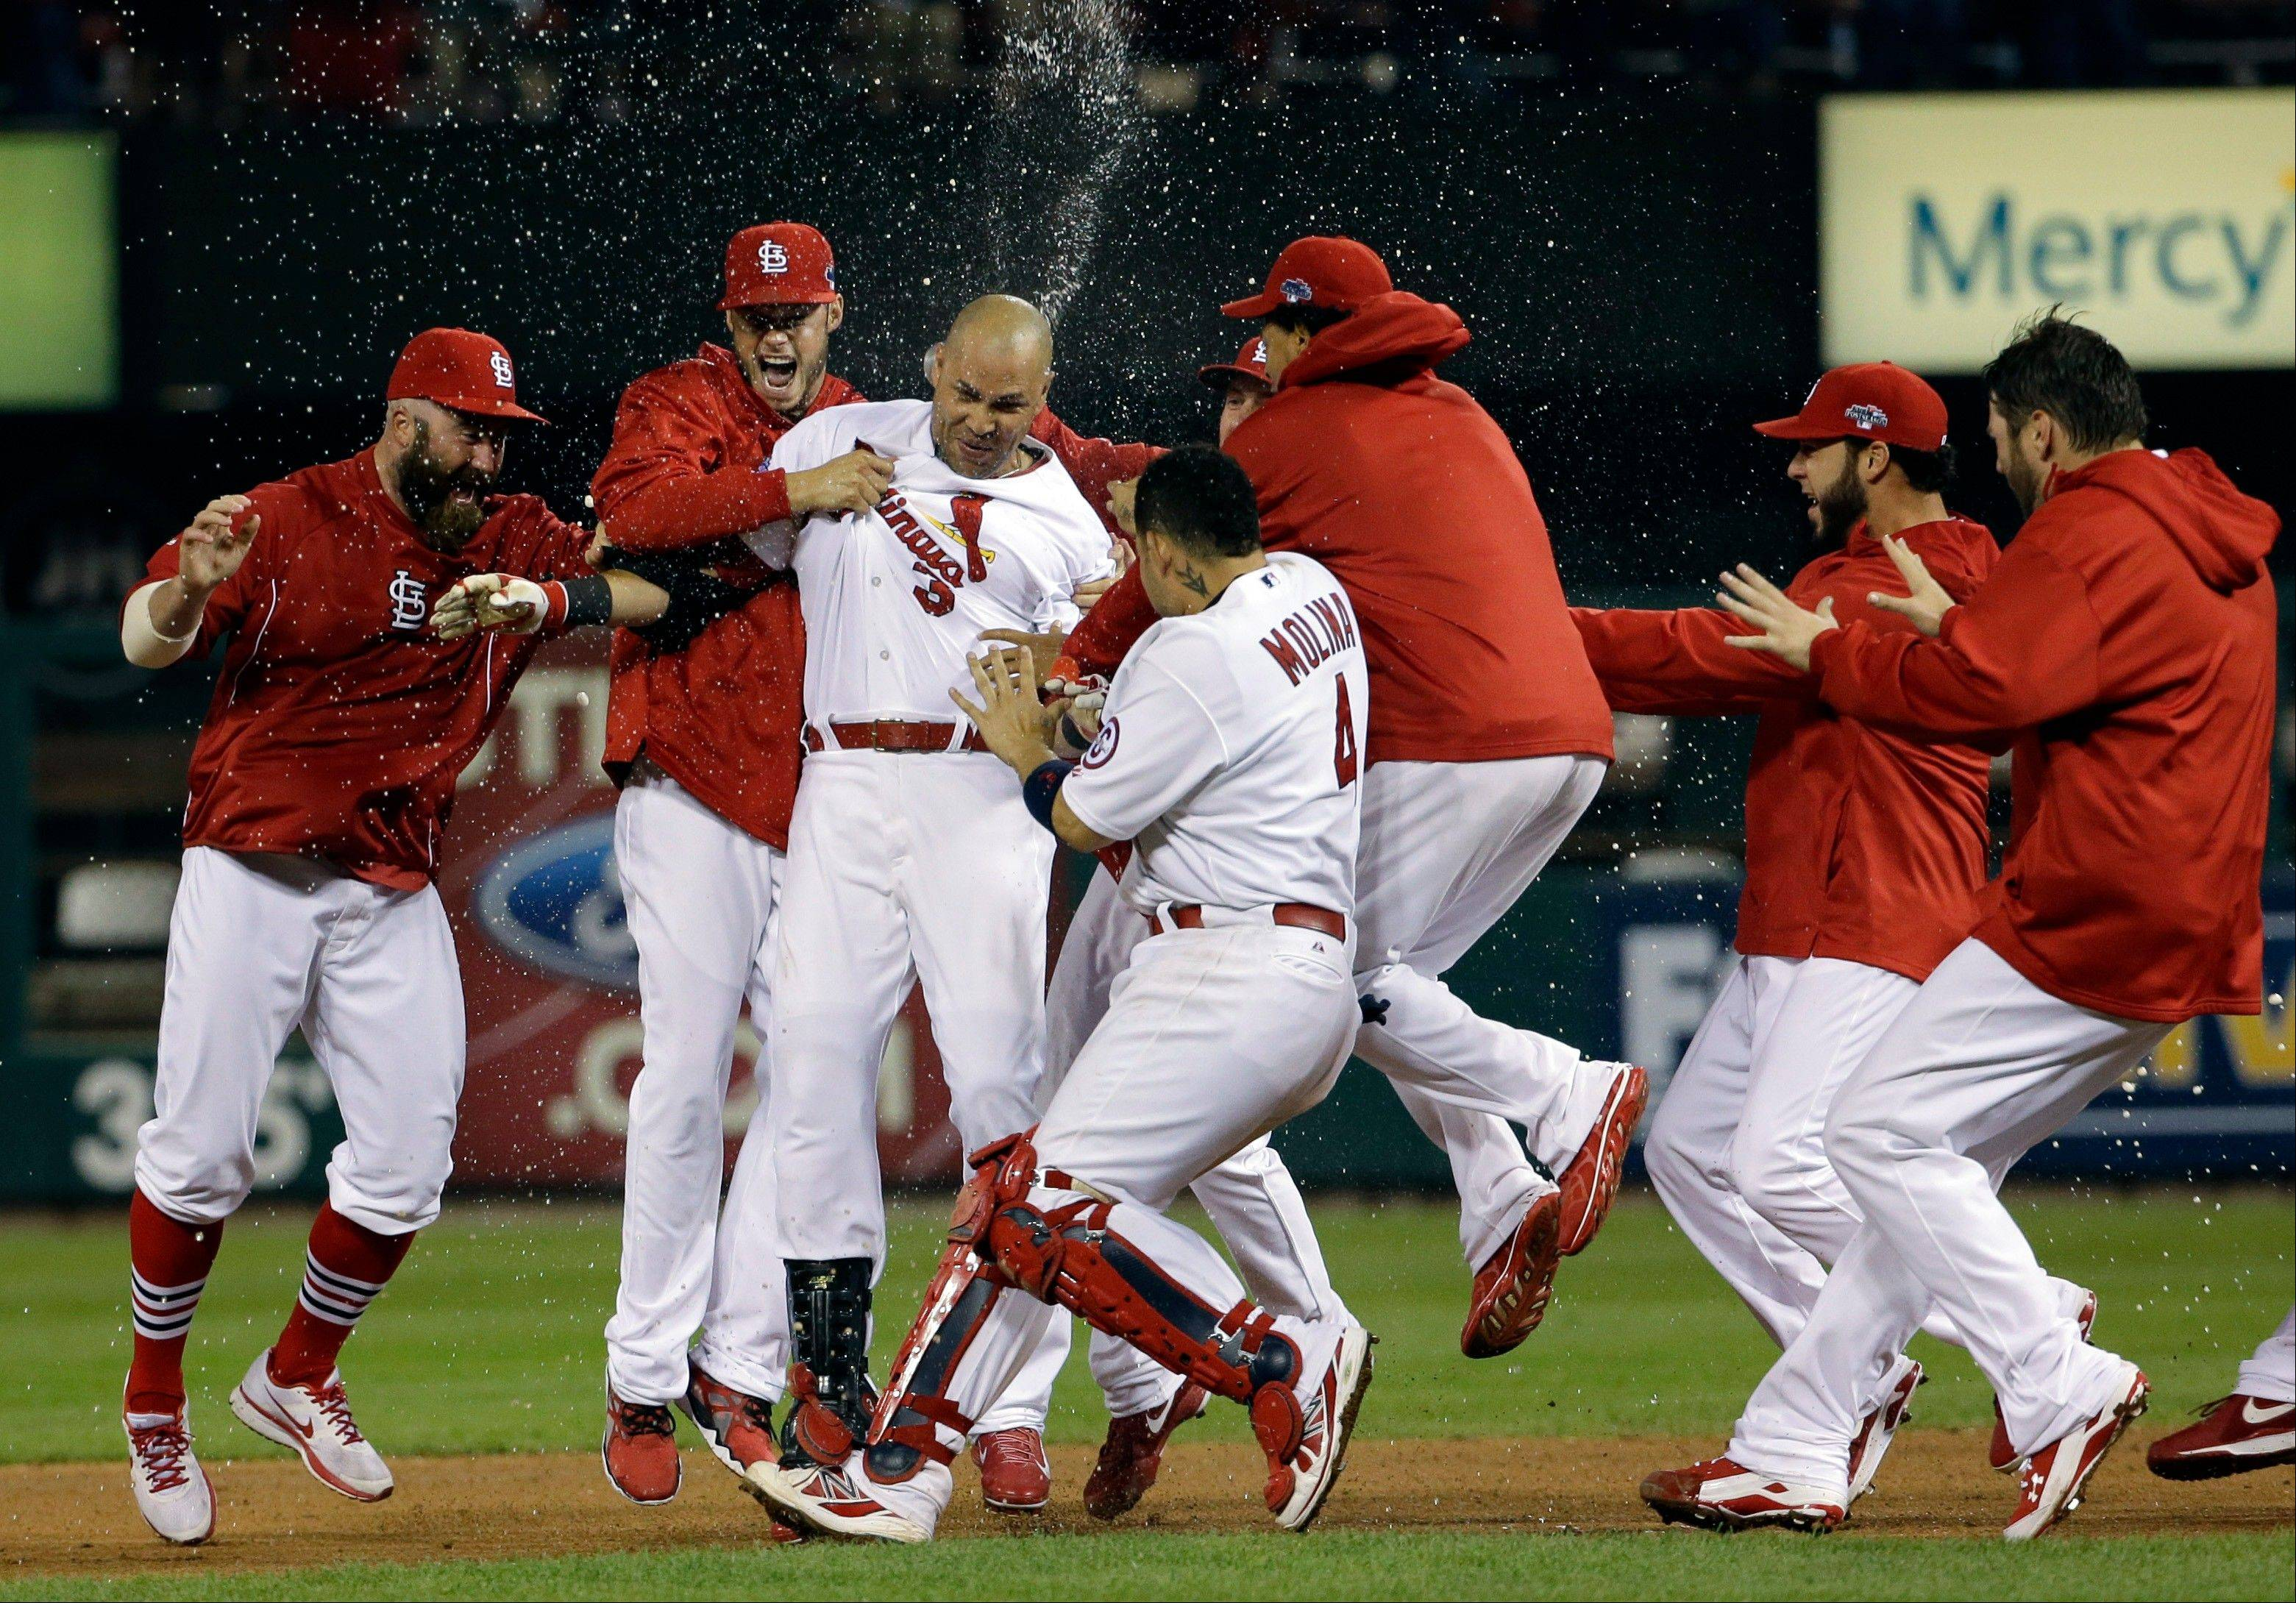 Cardinals saved by Beltran in Game 1